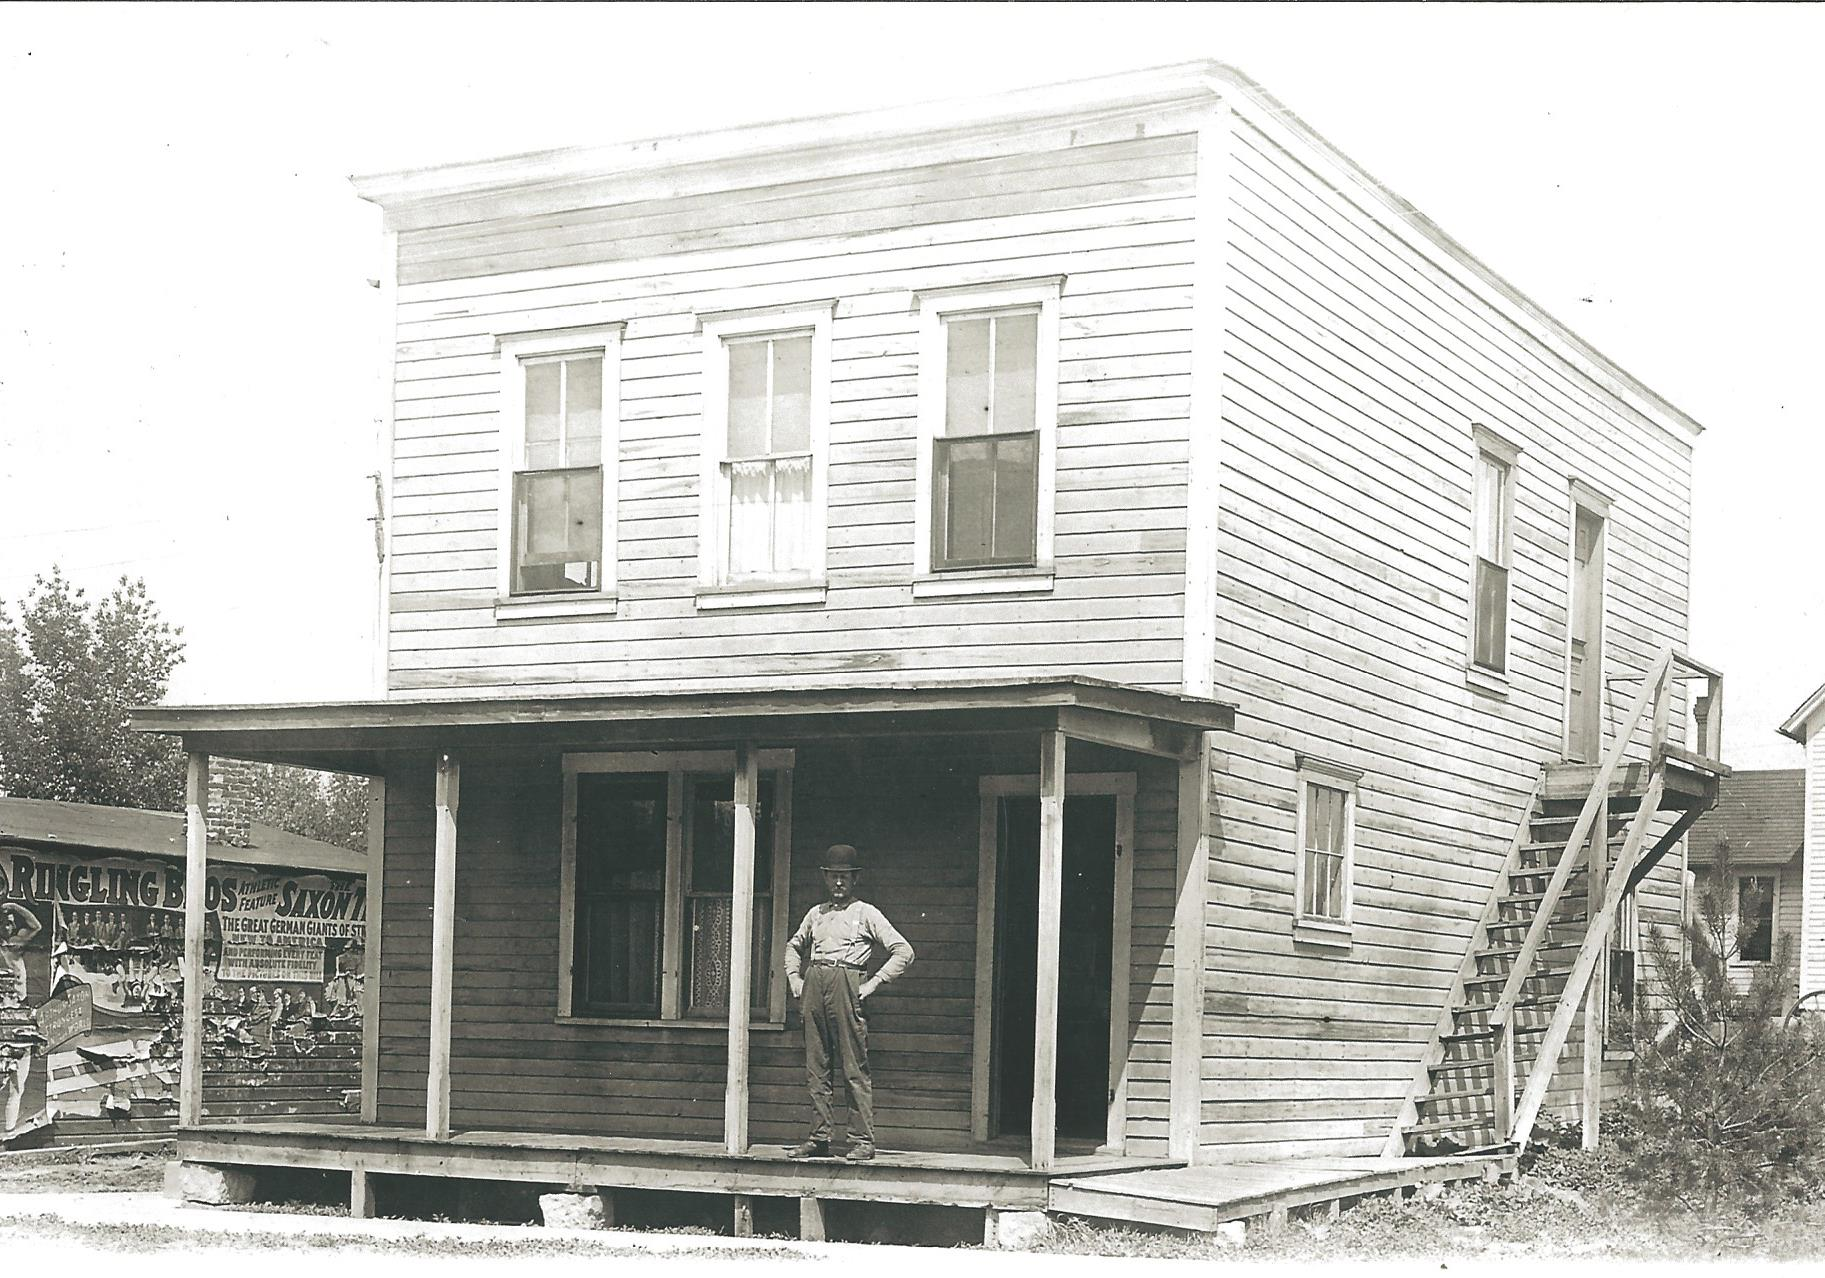 1910 Hayward Boarding House